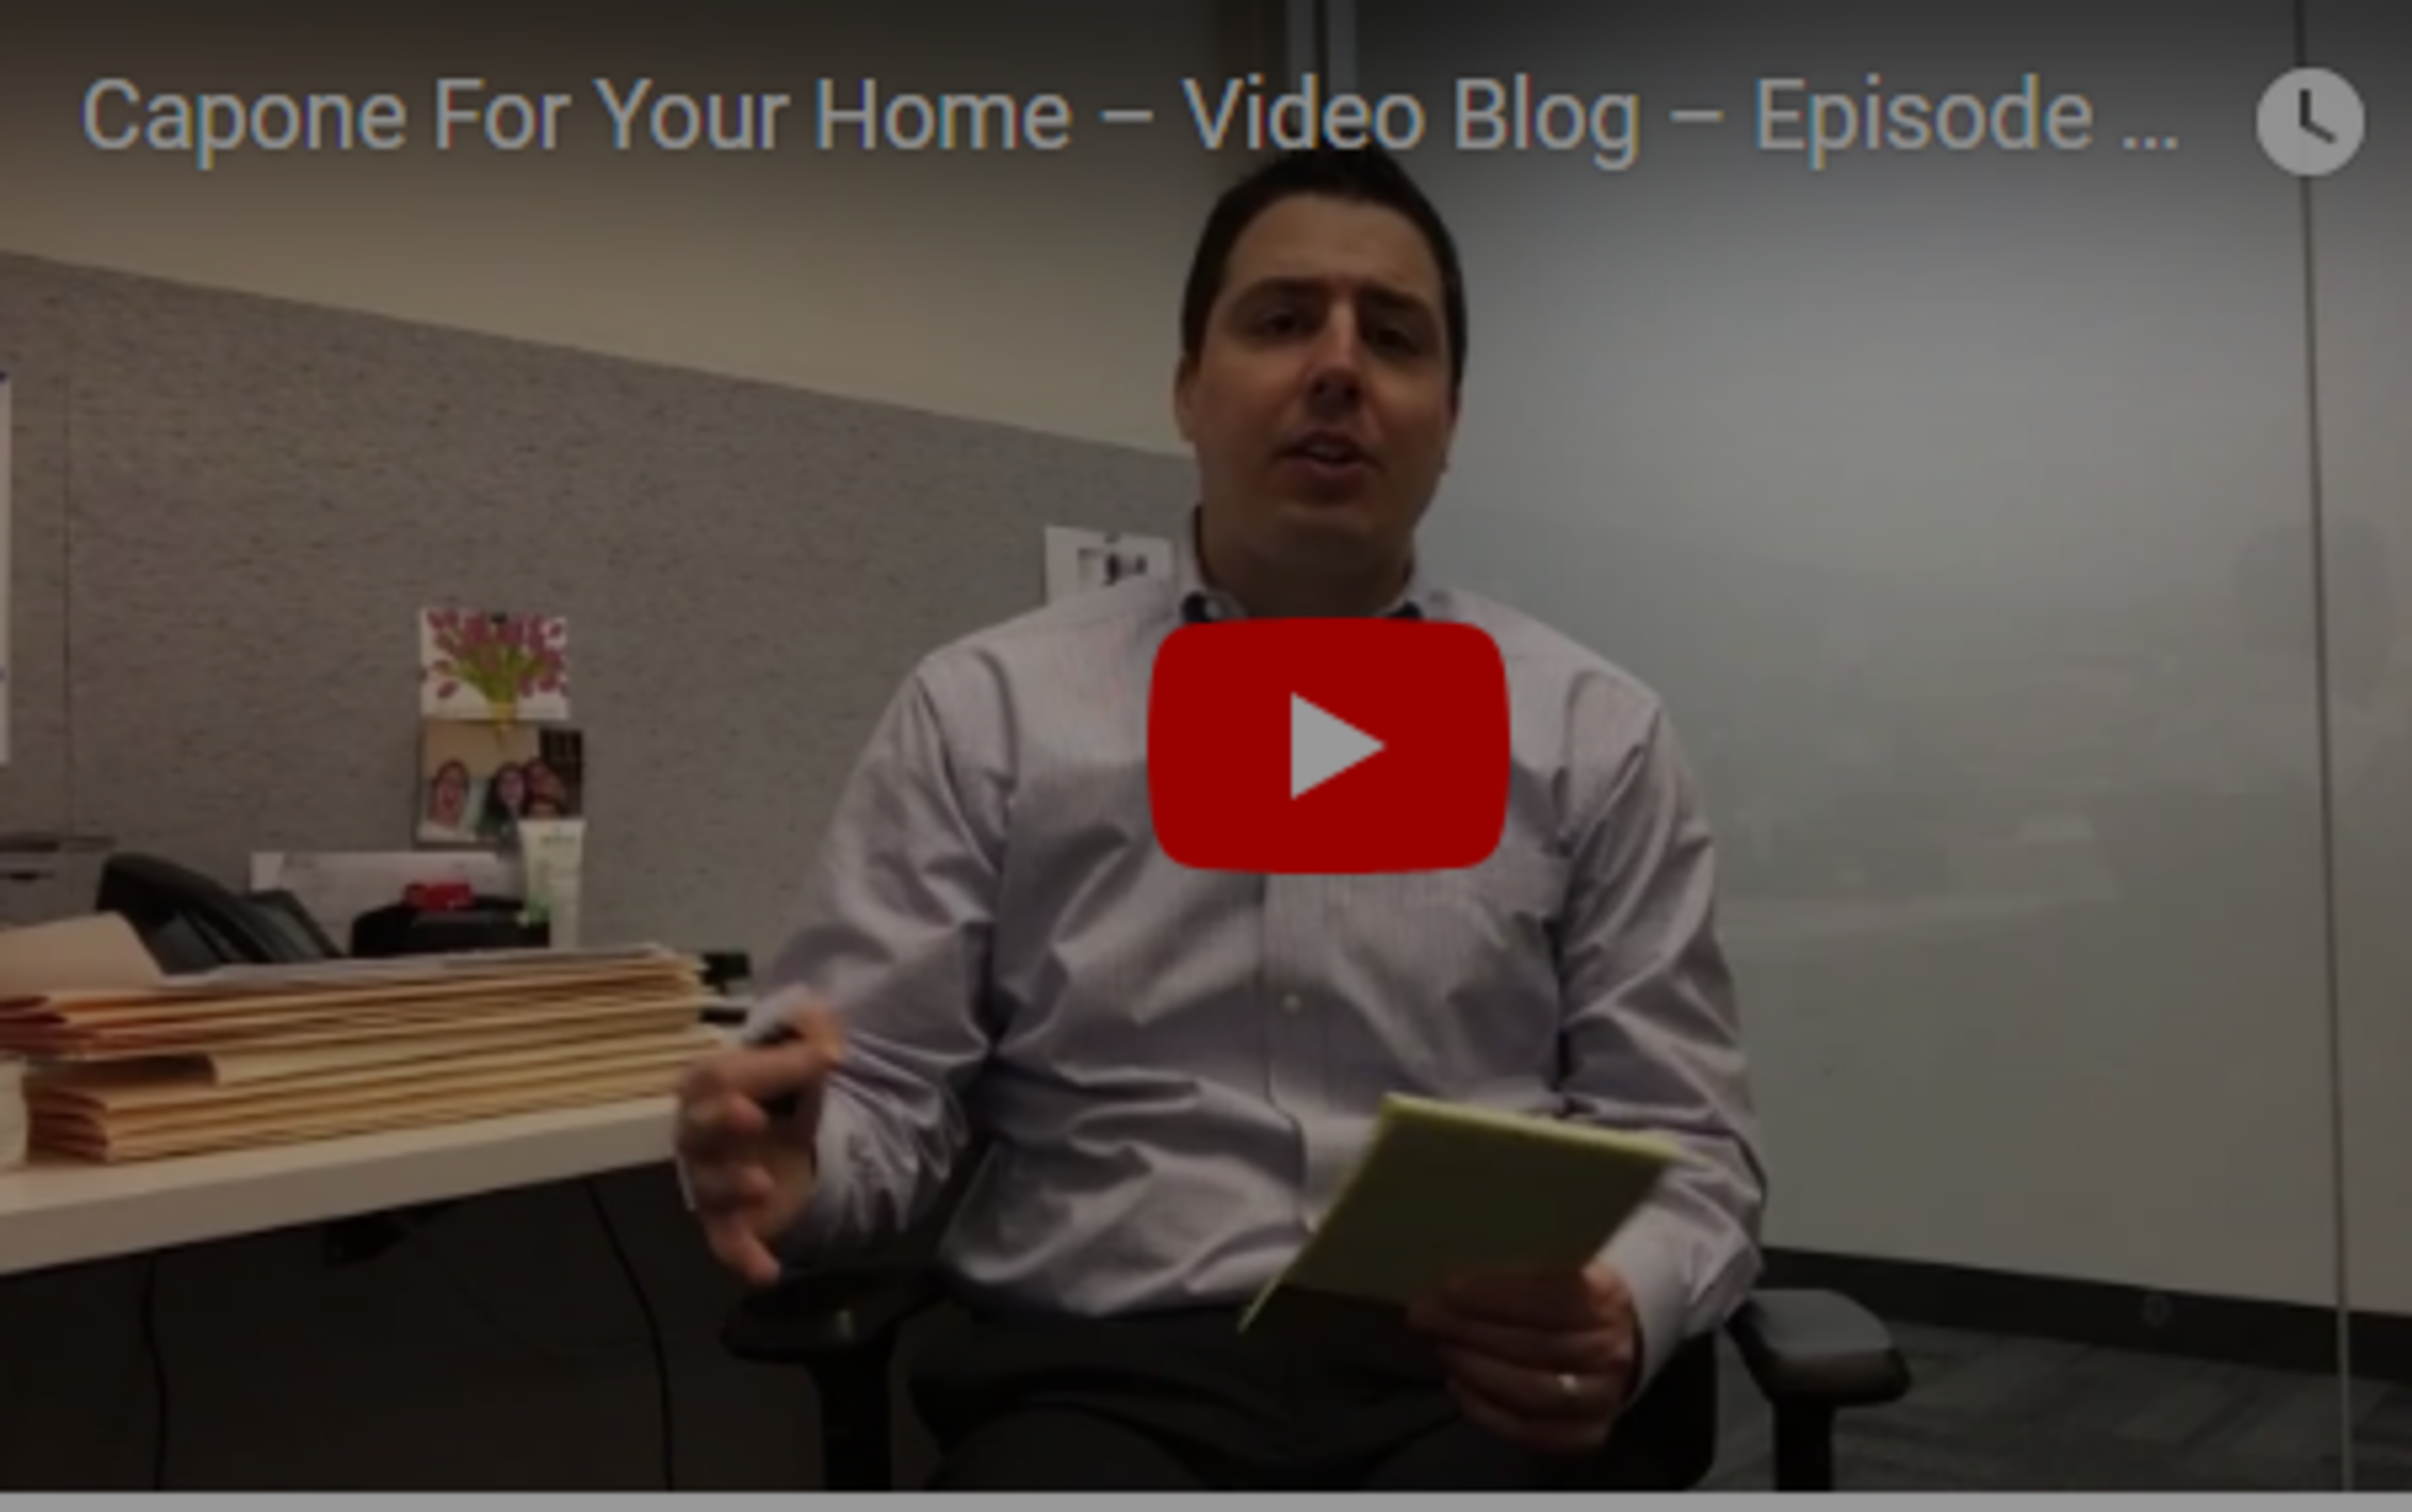 Video Blog – Episode 2: Radon!